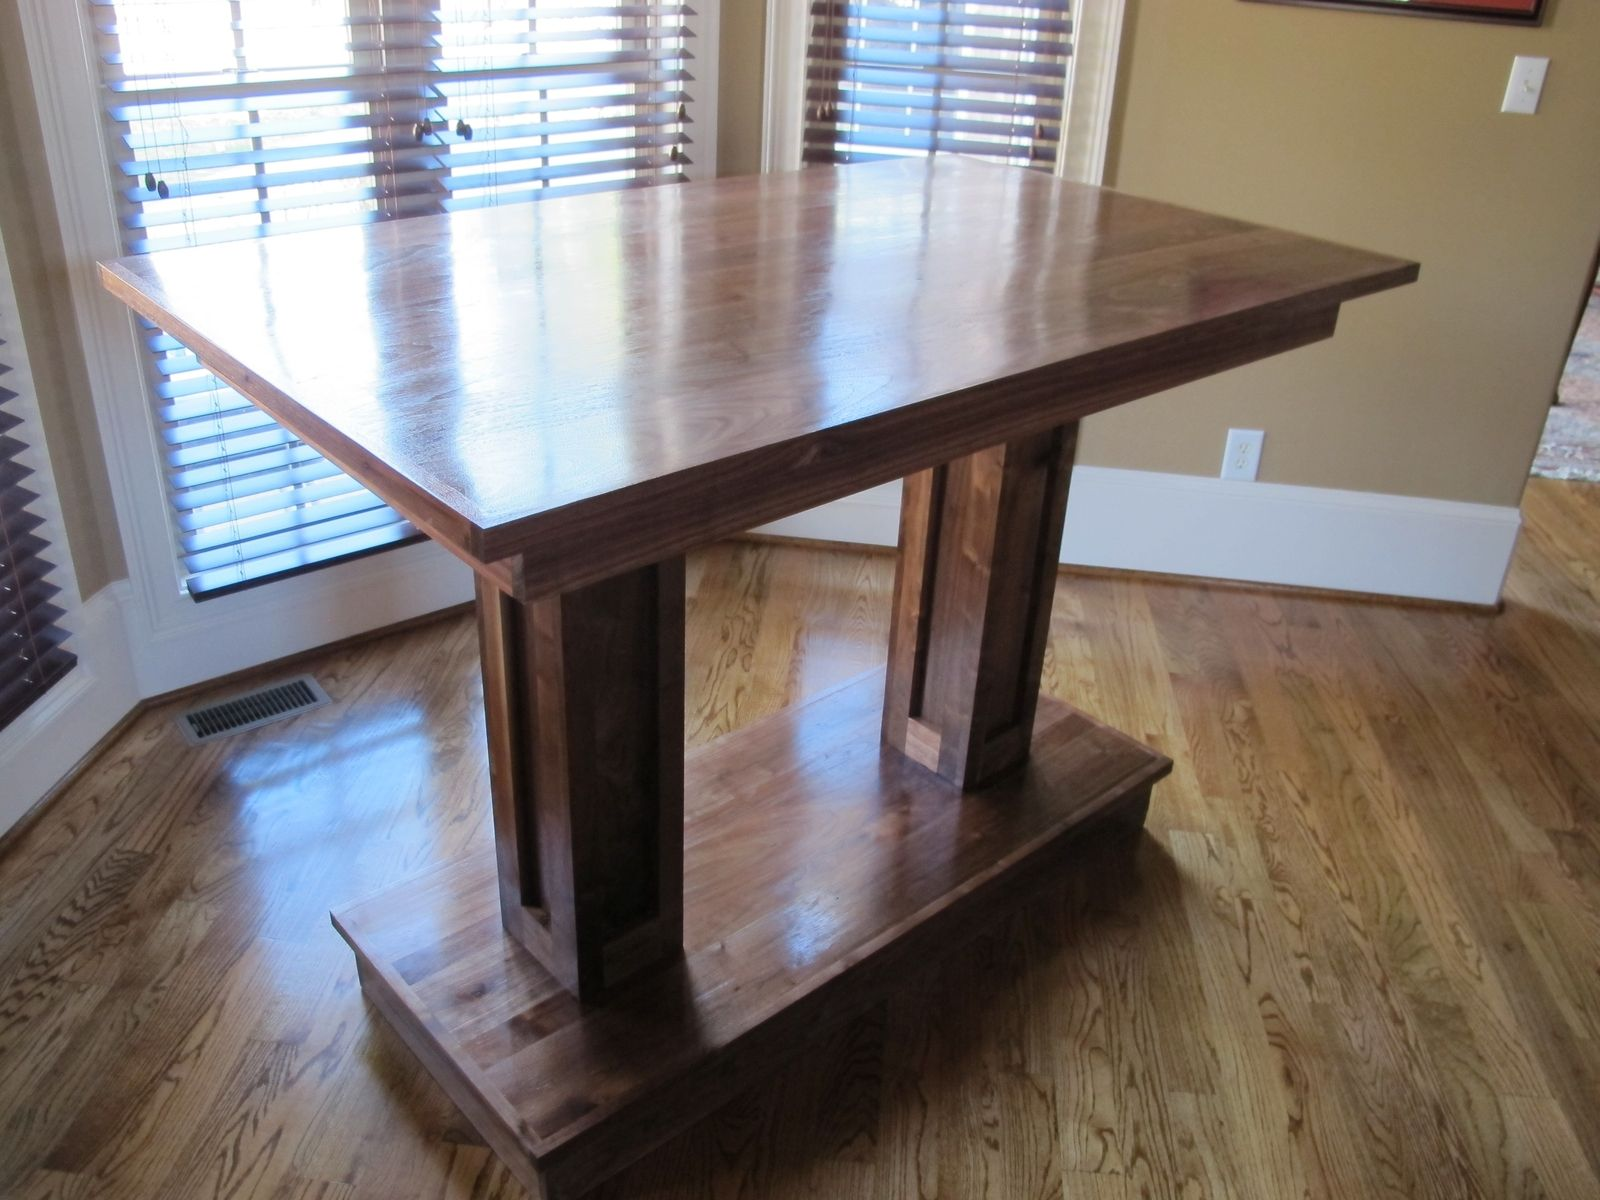 Buy A Handmade Solid Wood Pub Table Made To Order From Carolina Woodworking